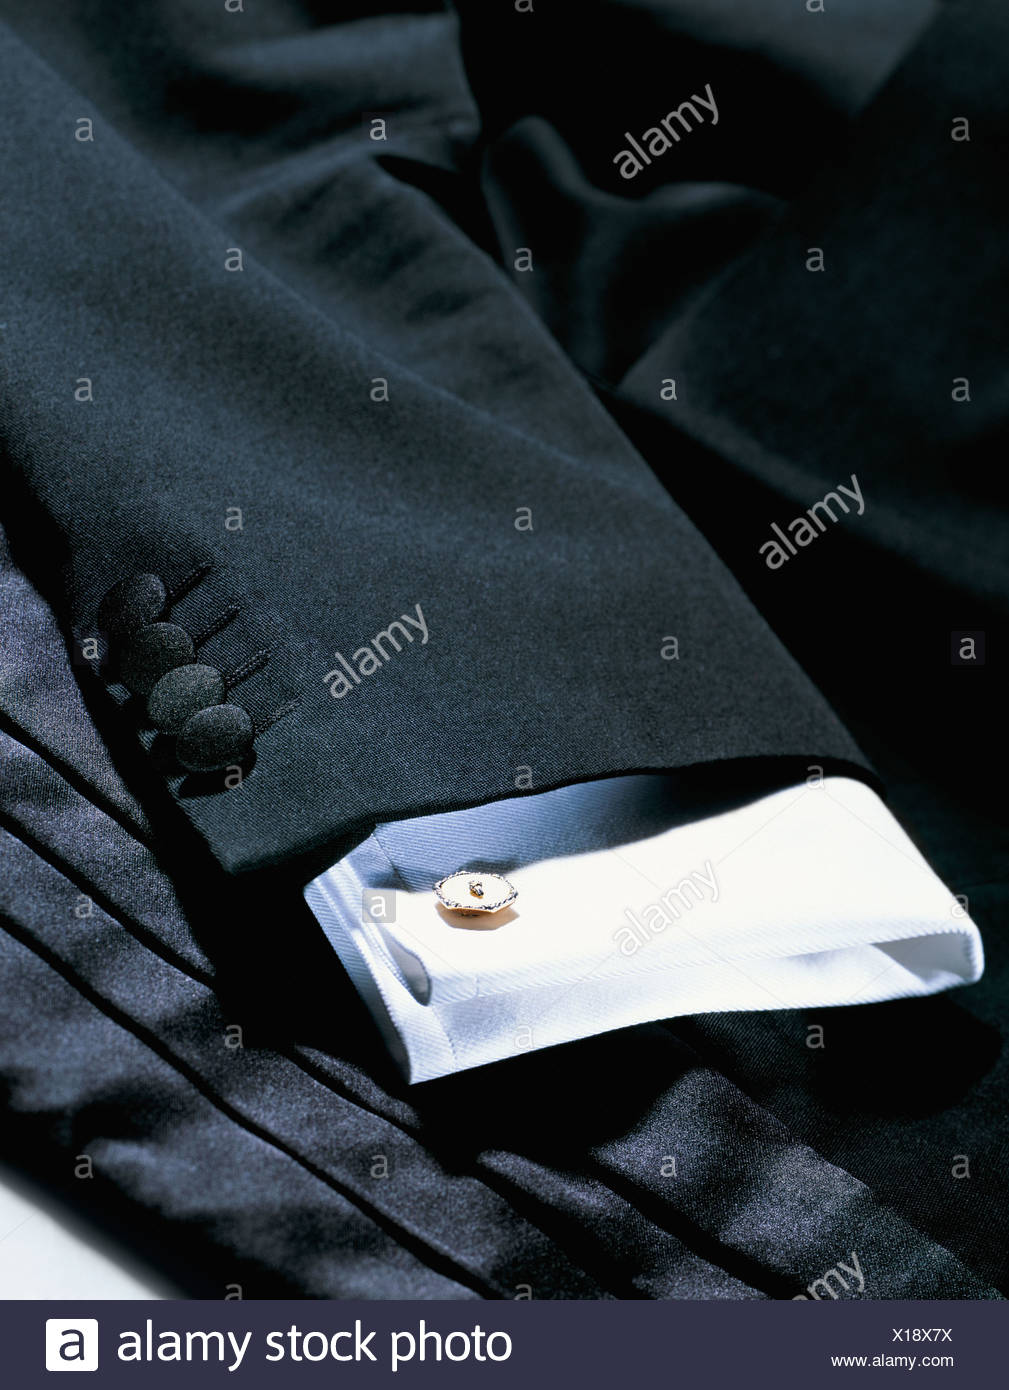 Dinner jacket and shirt - Stock Image